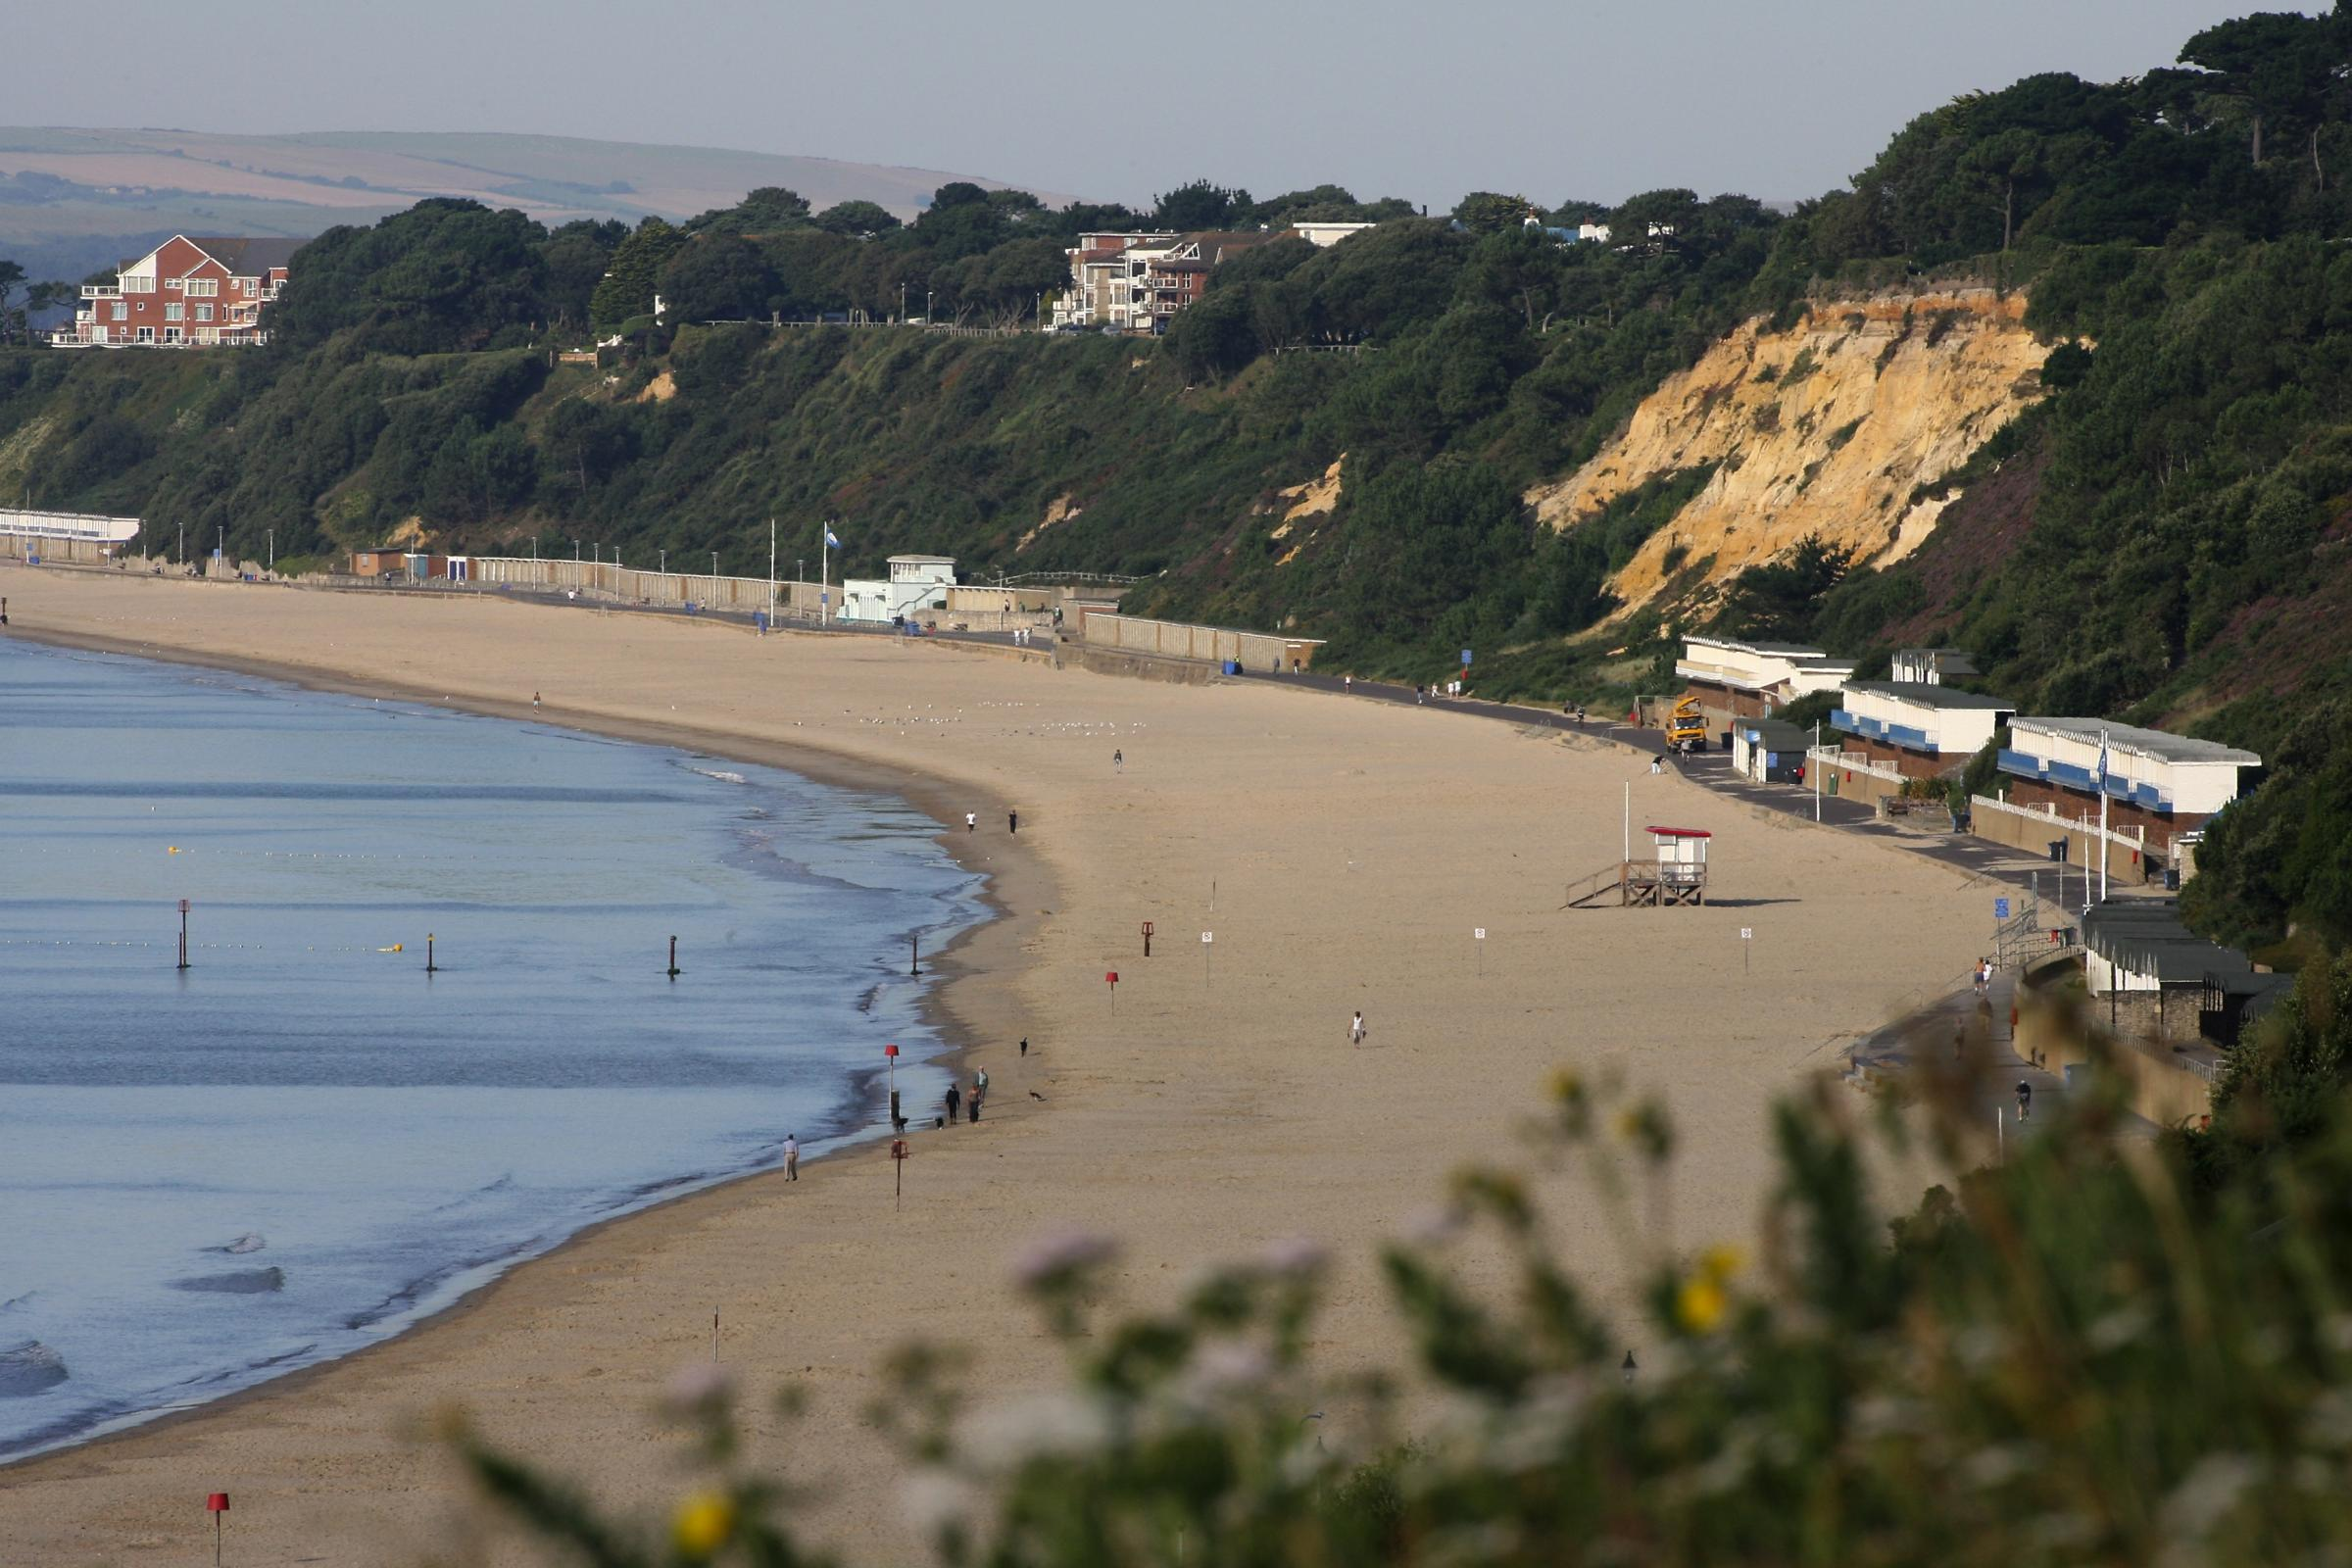 14-year-old threatened by gang of 15 teenagers during robbery at Poole beach